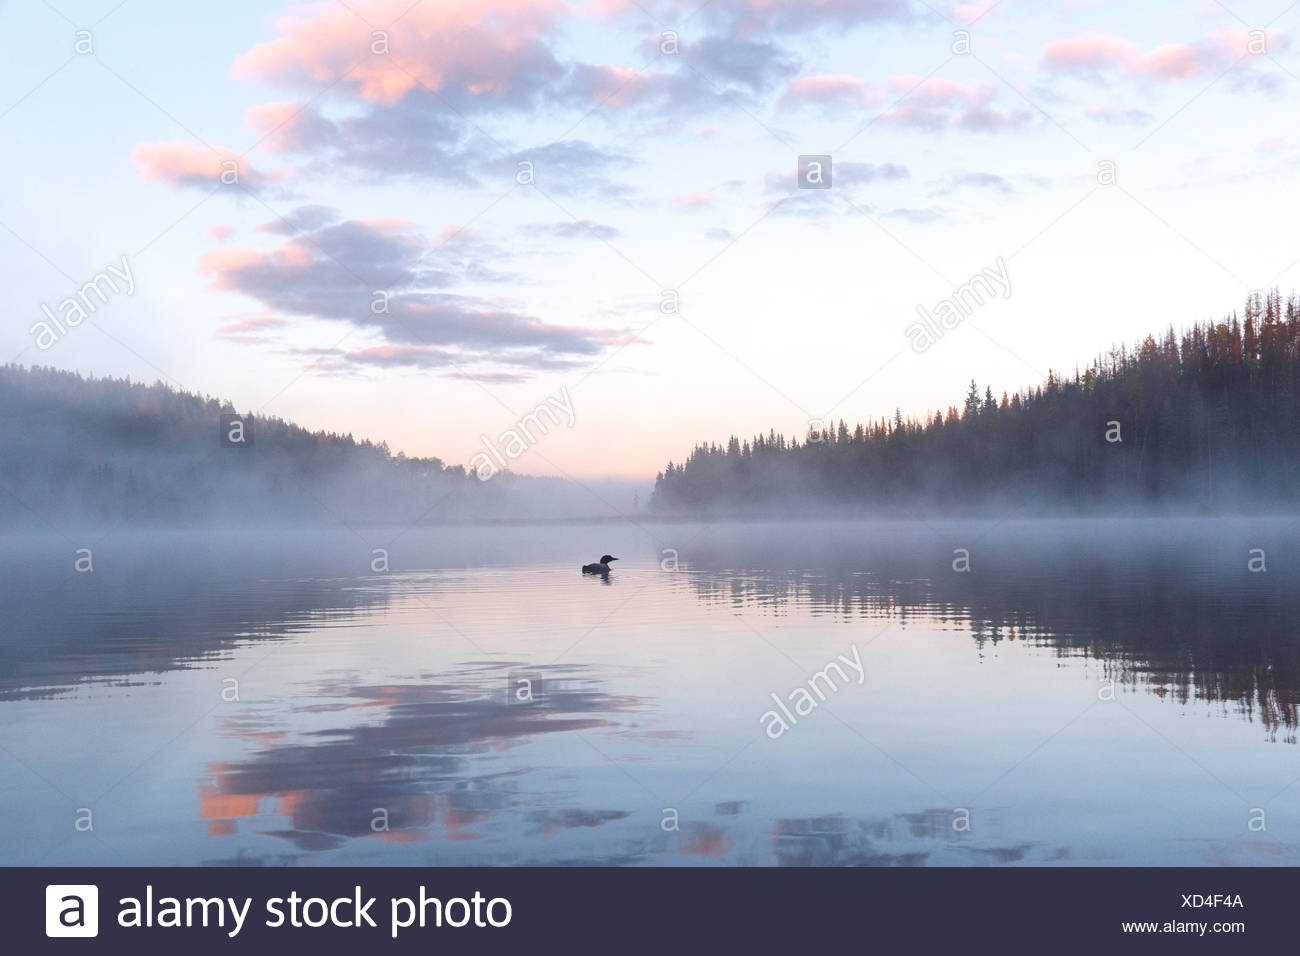 Common loon (Gavia immer), in mist at sunrise,  Lac Le Jeune, British Columbia. - Stock Image